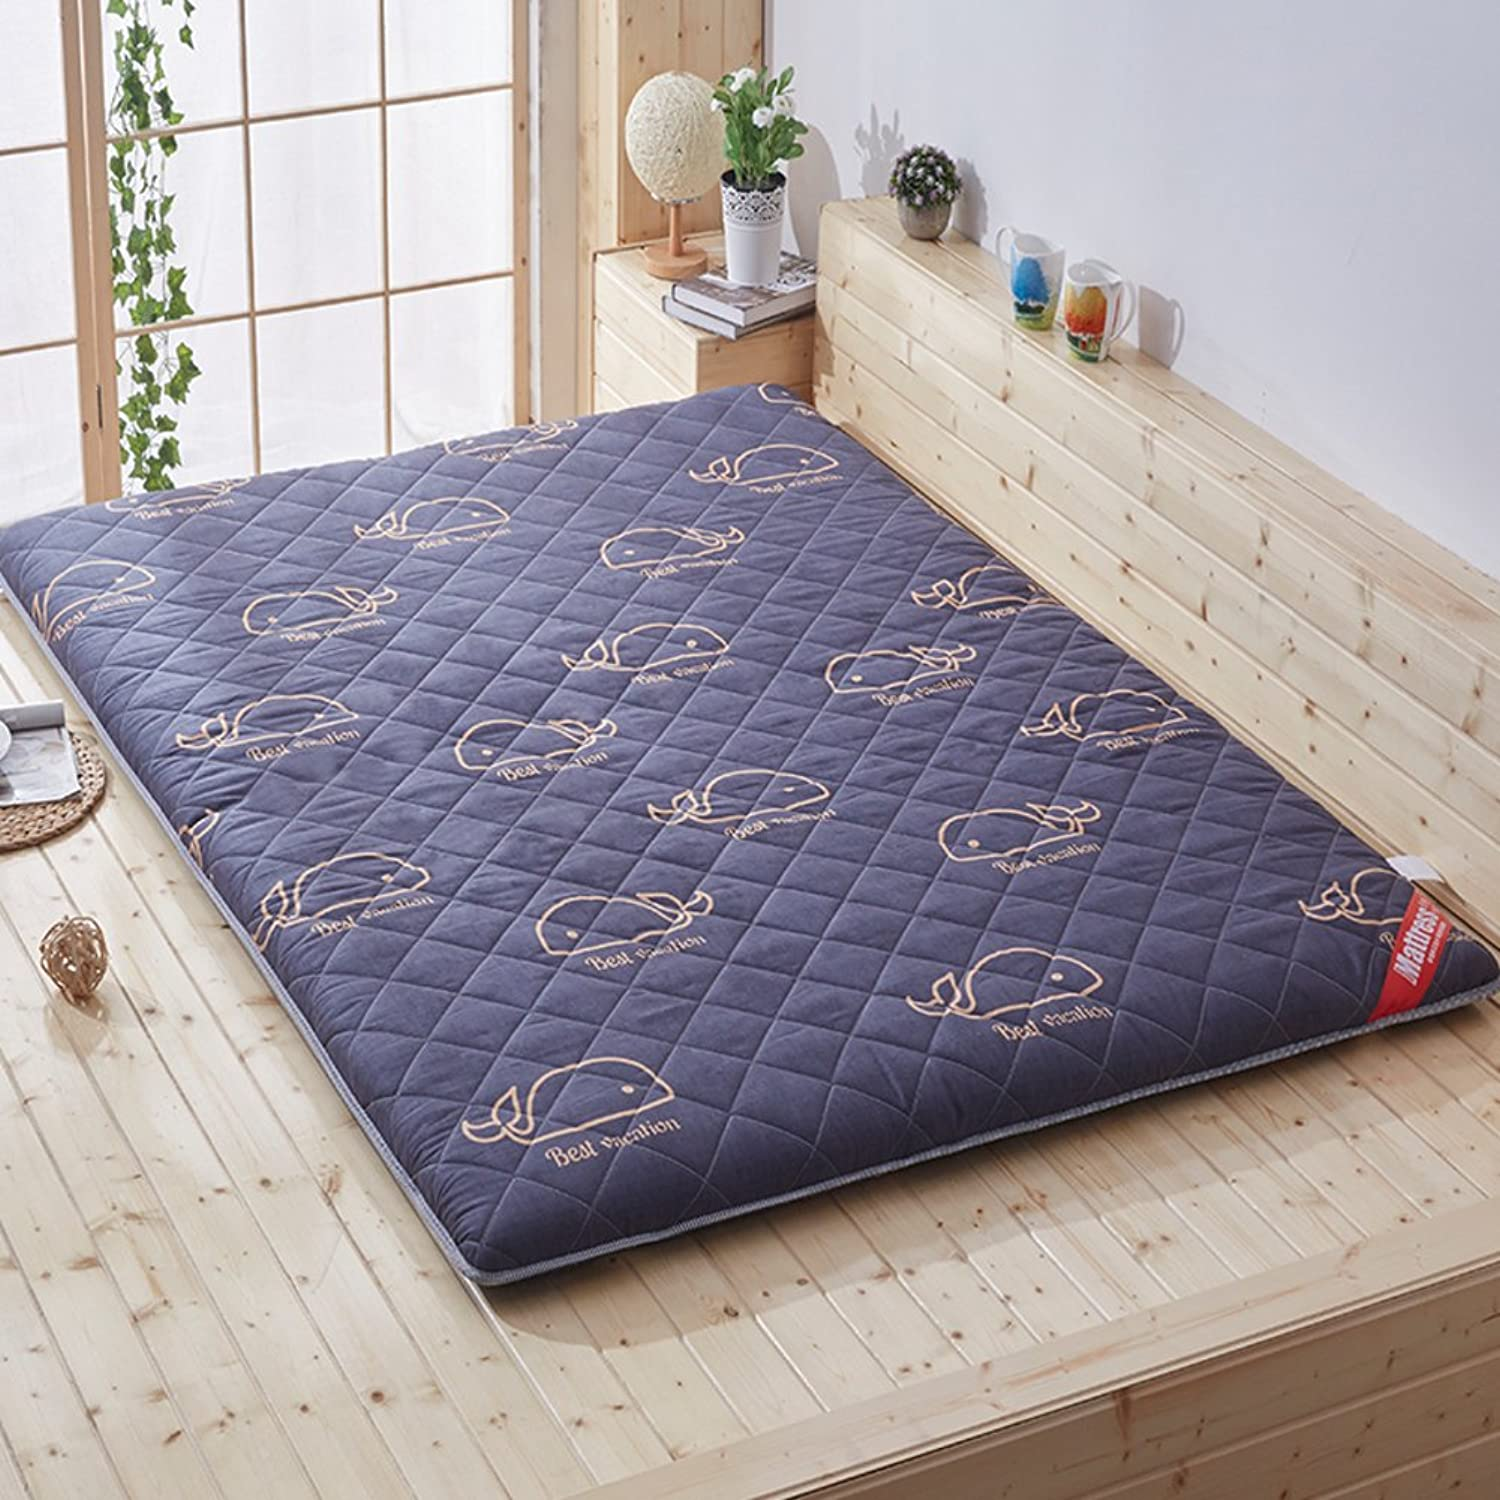 Japanese Floor Futon Mattress, Breathable Mattress Mat Topper Pad Bed Roll Bay Window Cushion for Stdudent Dorm Home Meditaion -a Full